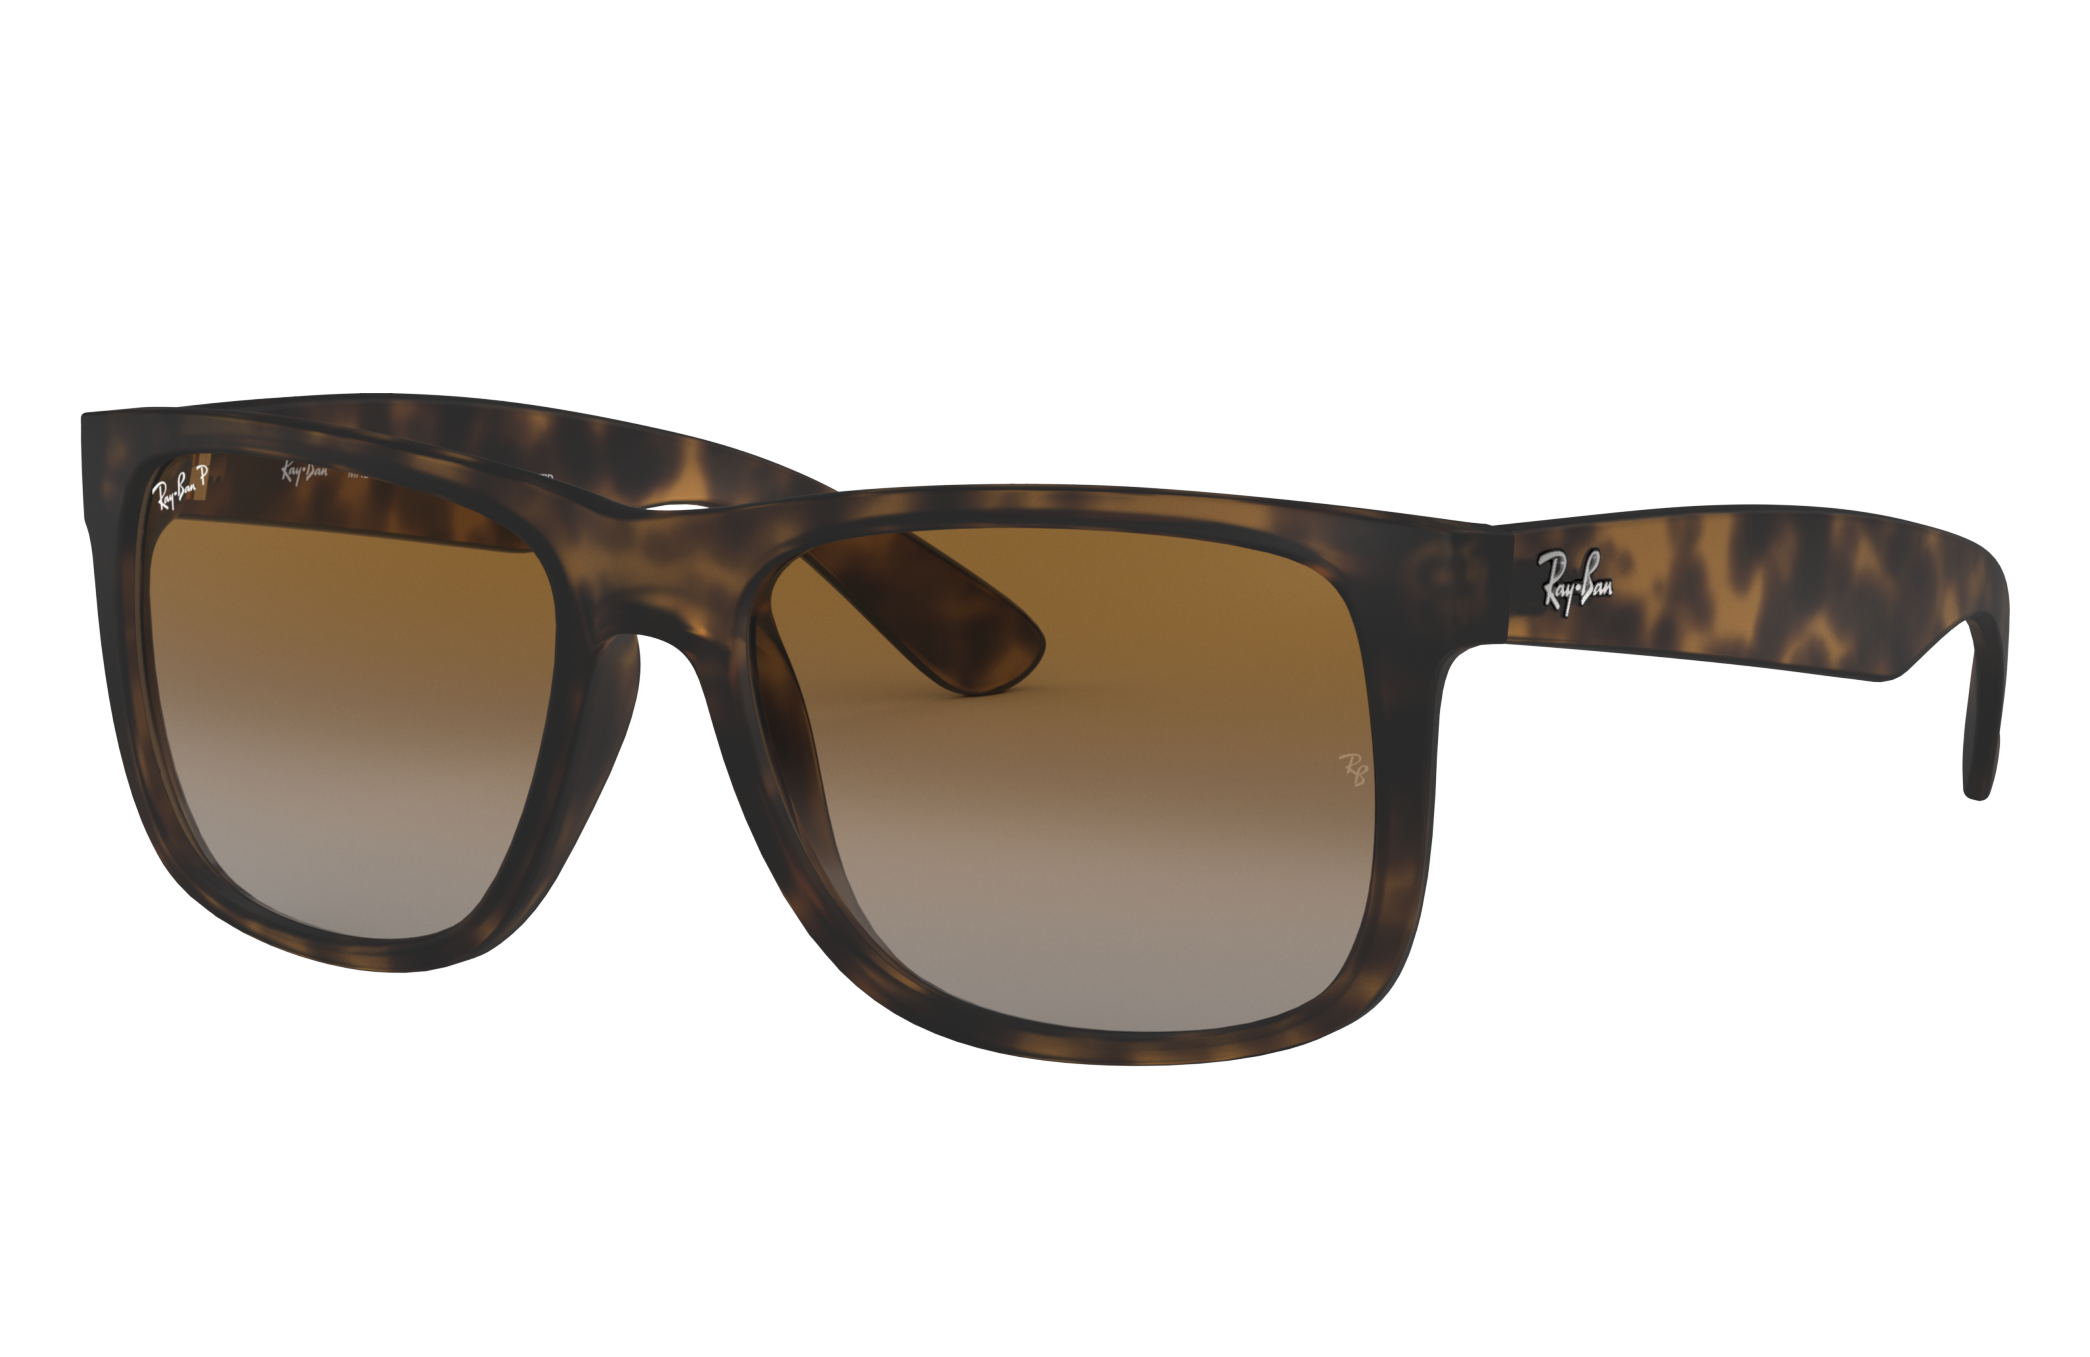 Ray-Ban Justin Classic Low Bridge Fit Tortoise, Polarized Brown Lenses - RB4165F